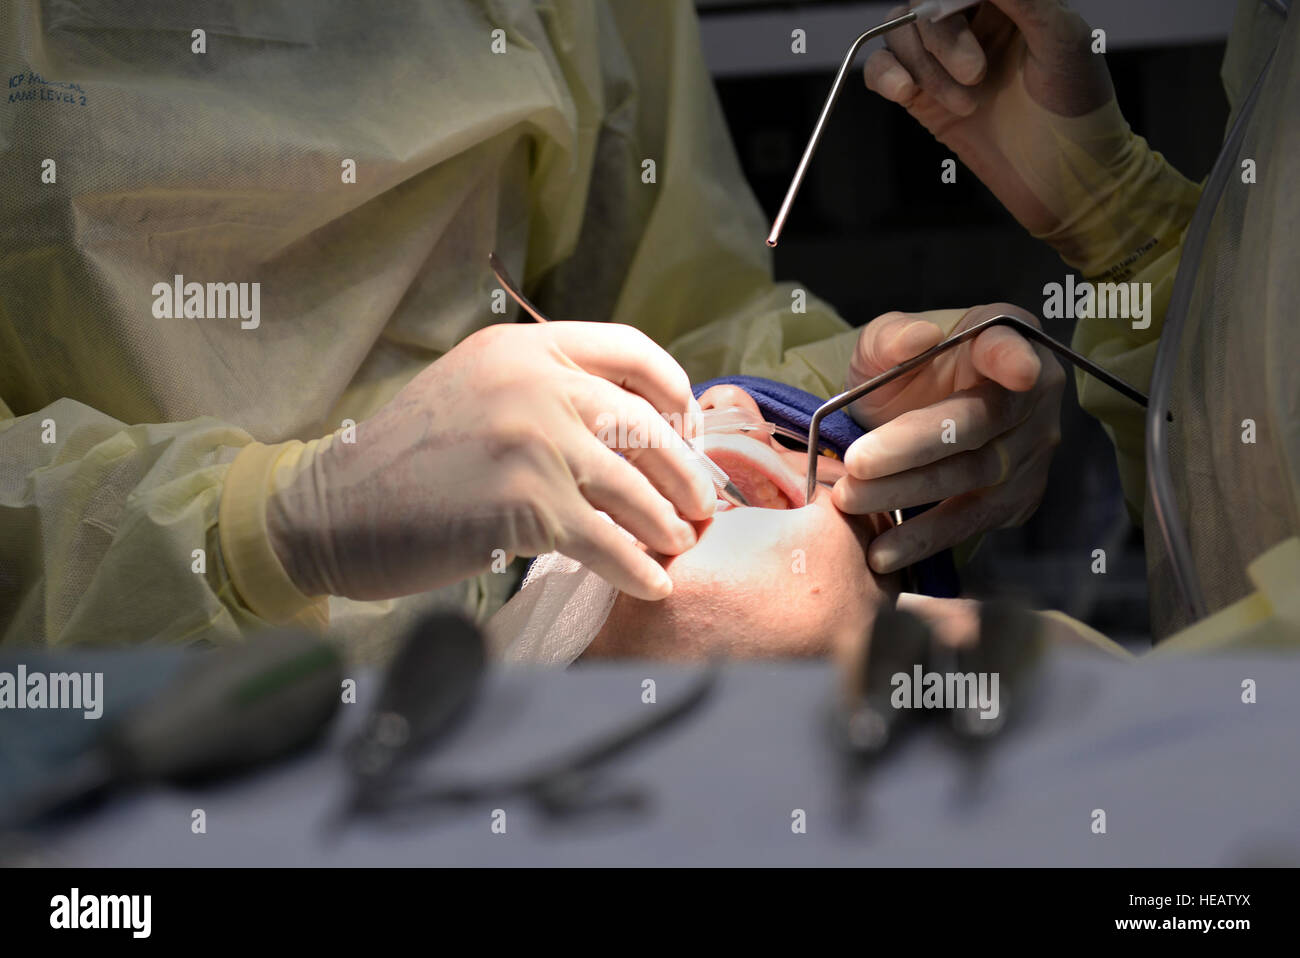 U.S. Air Force Airmen assigned to the 633rd Medical Group, perform oral surgery at Langley Air Force Base, Va., - Stock Image